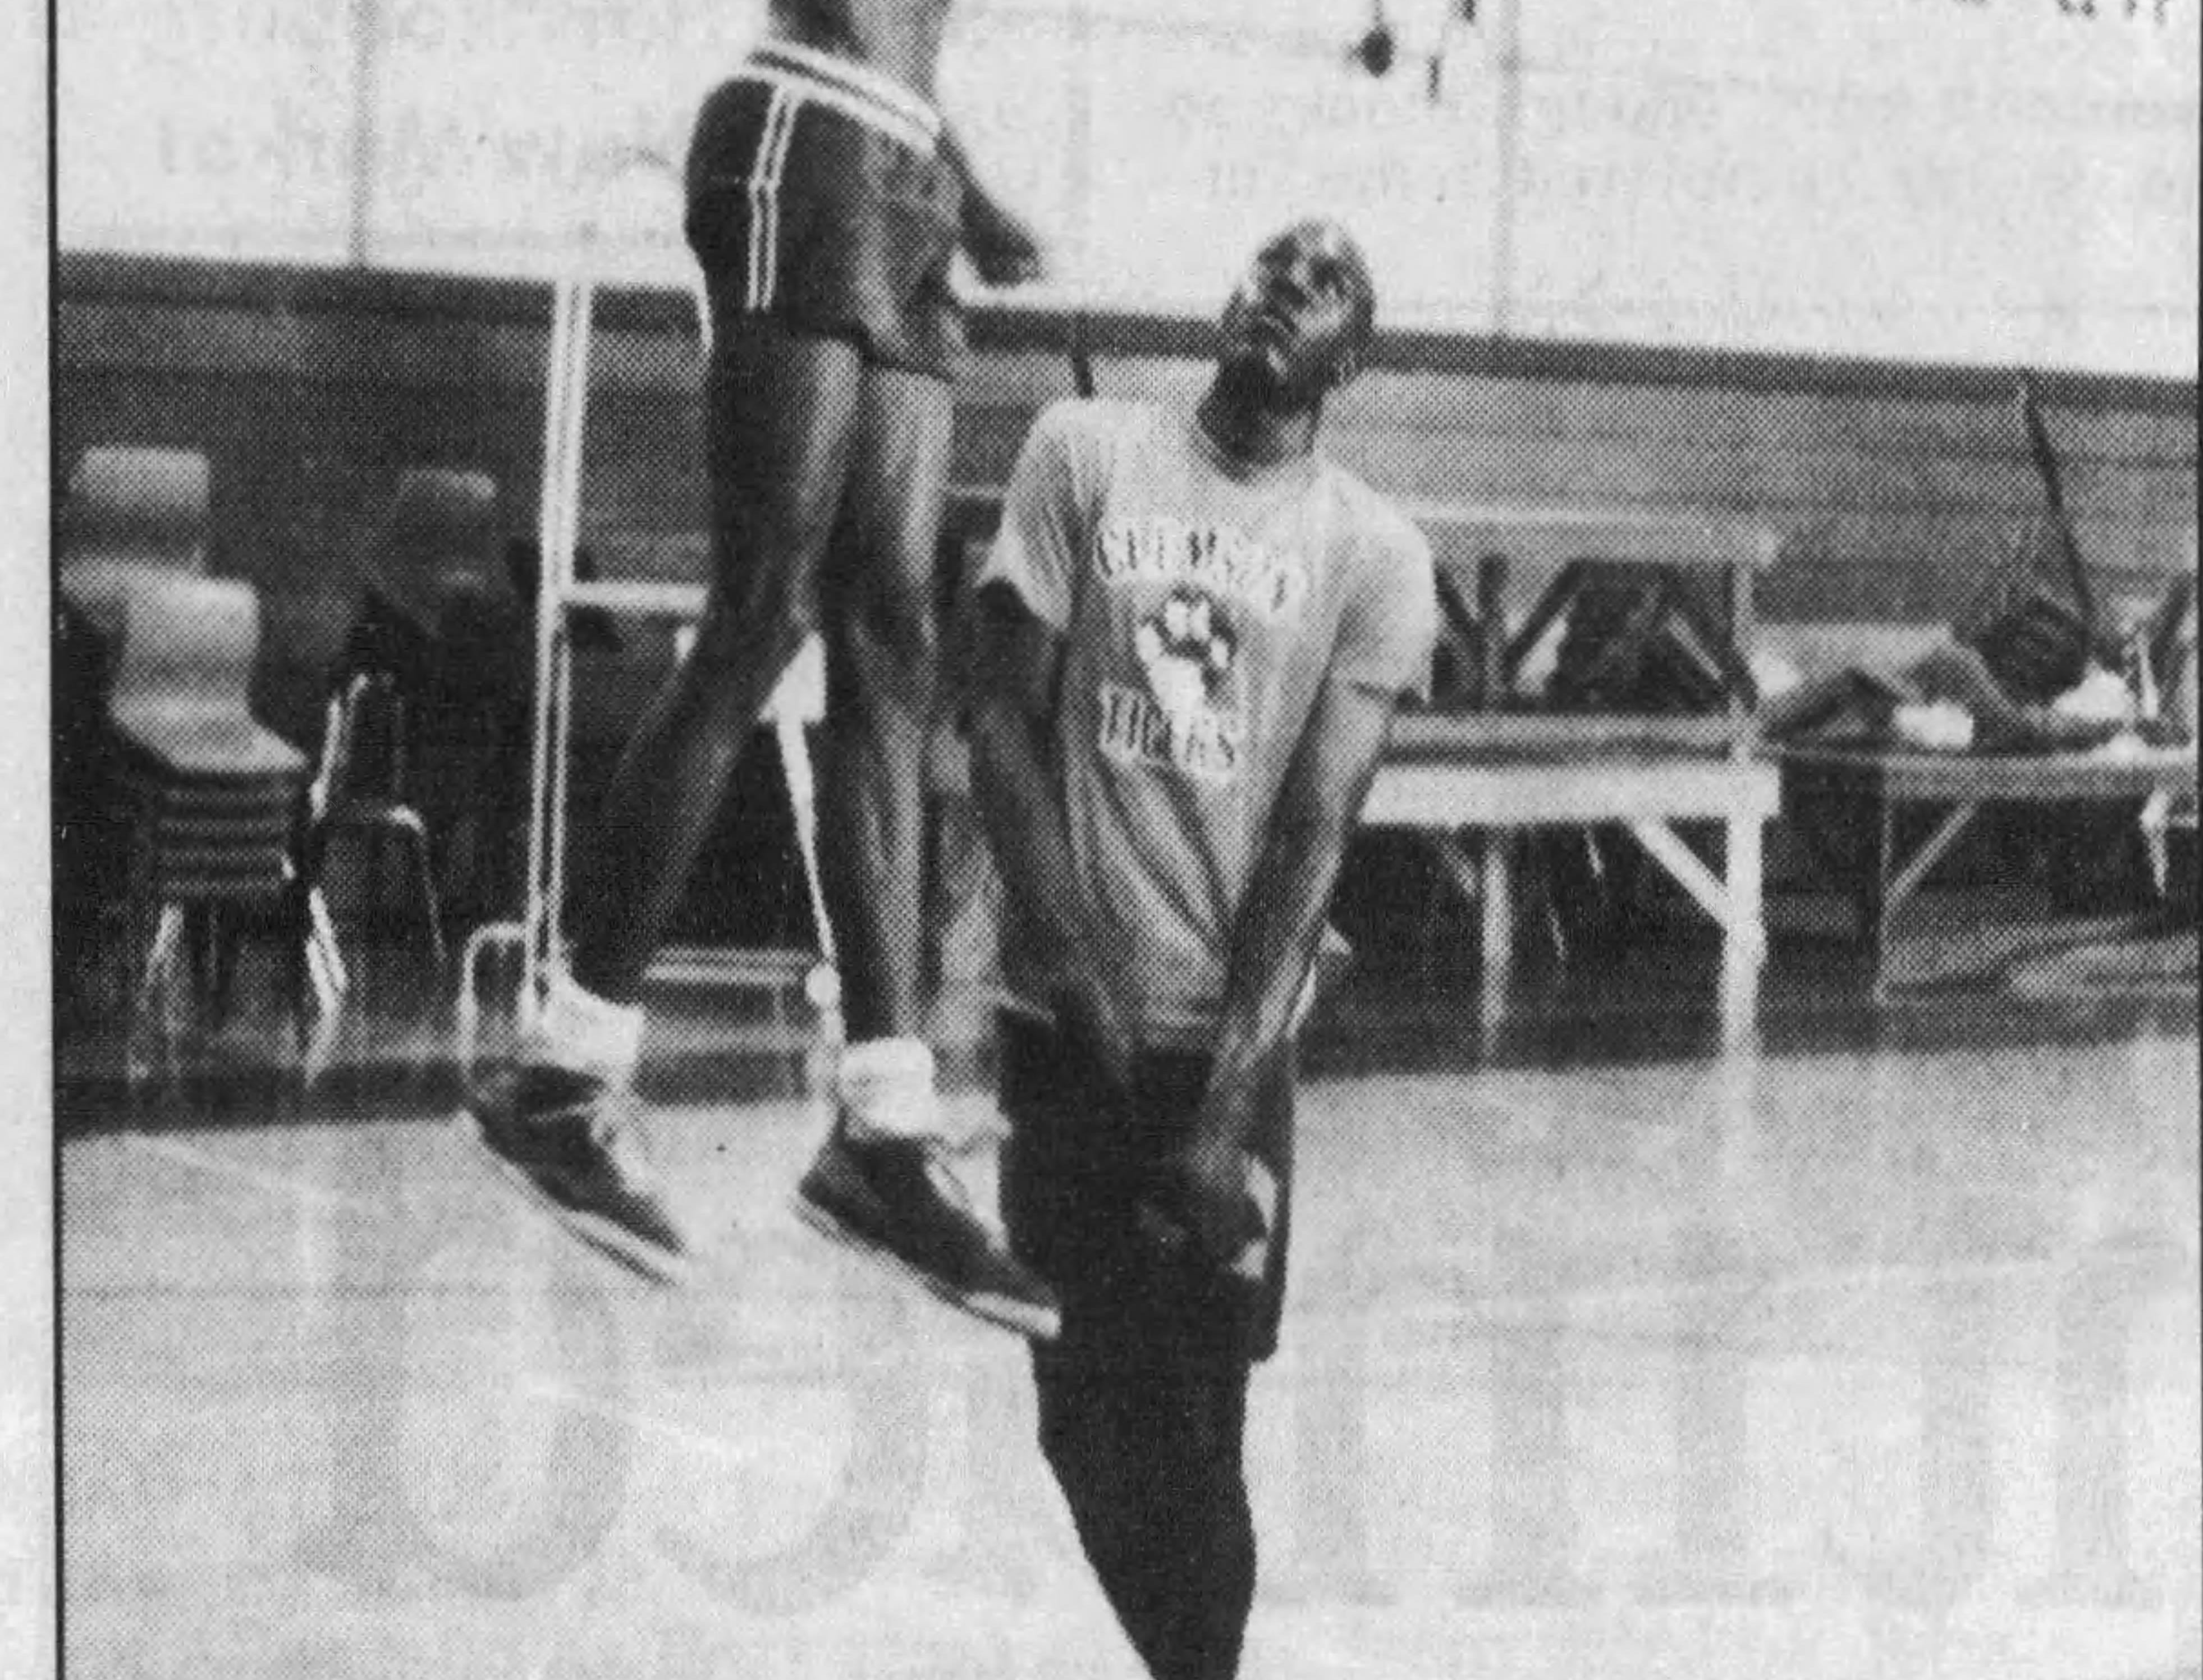 Keith Scott practices for his AAU team in 1989 in this photo from The News Leader.